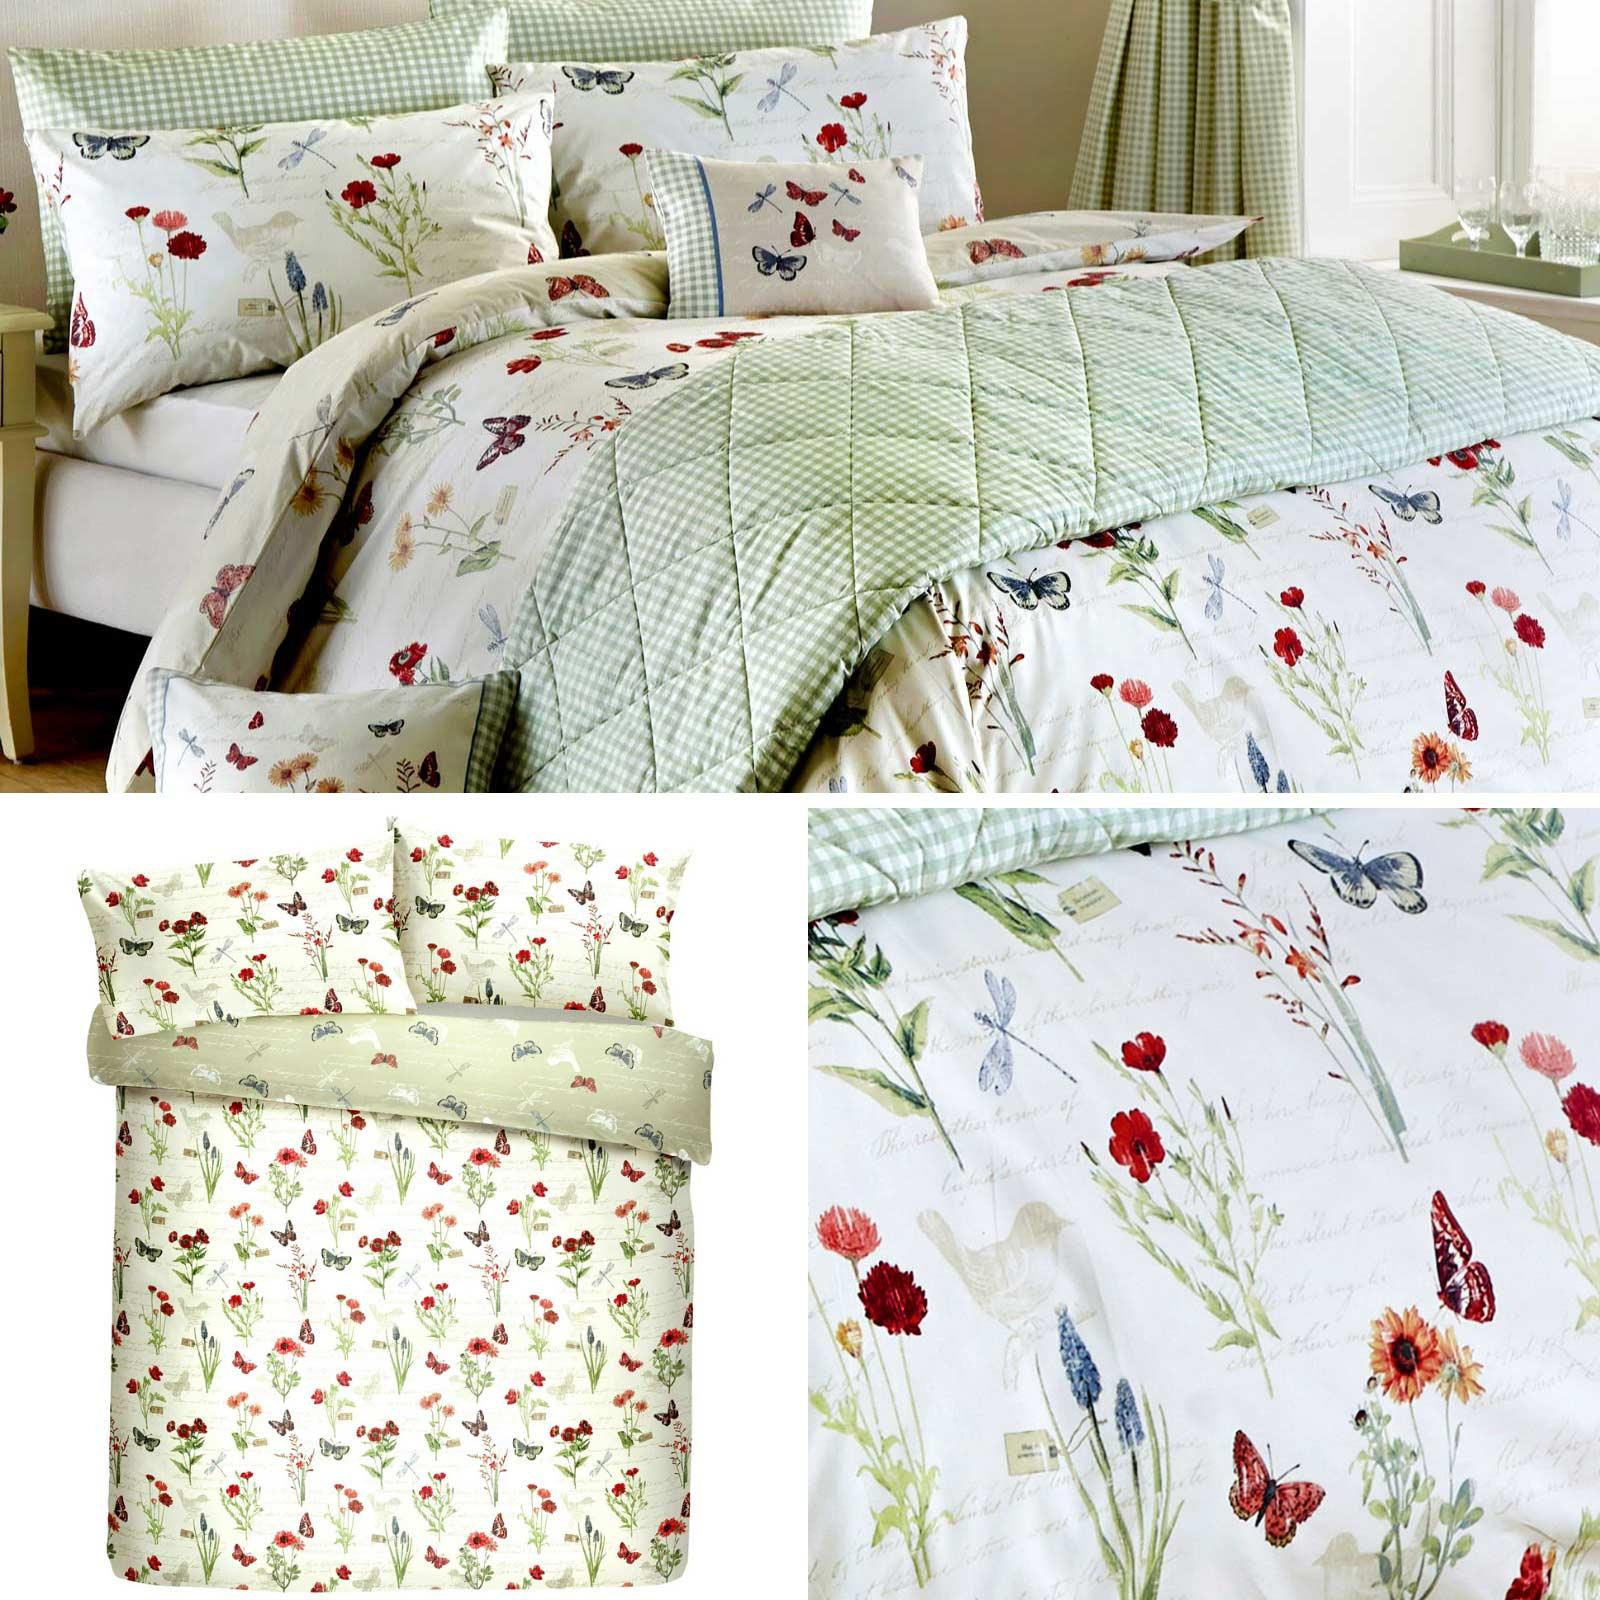 Green Duvet Covers Floral Butterfly Print Country Reversible Quilt Bedding Sets Ebay